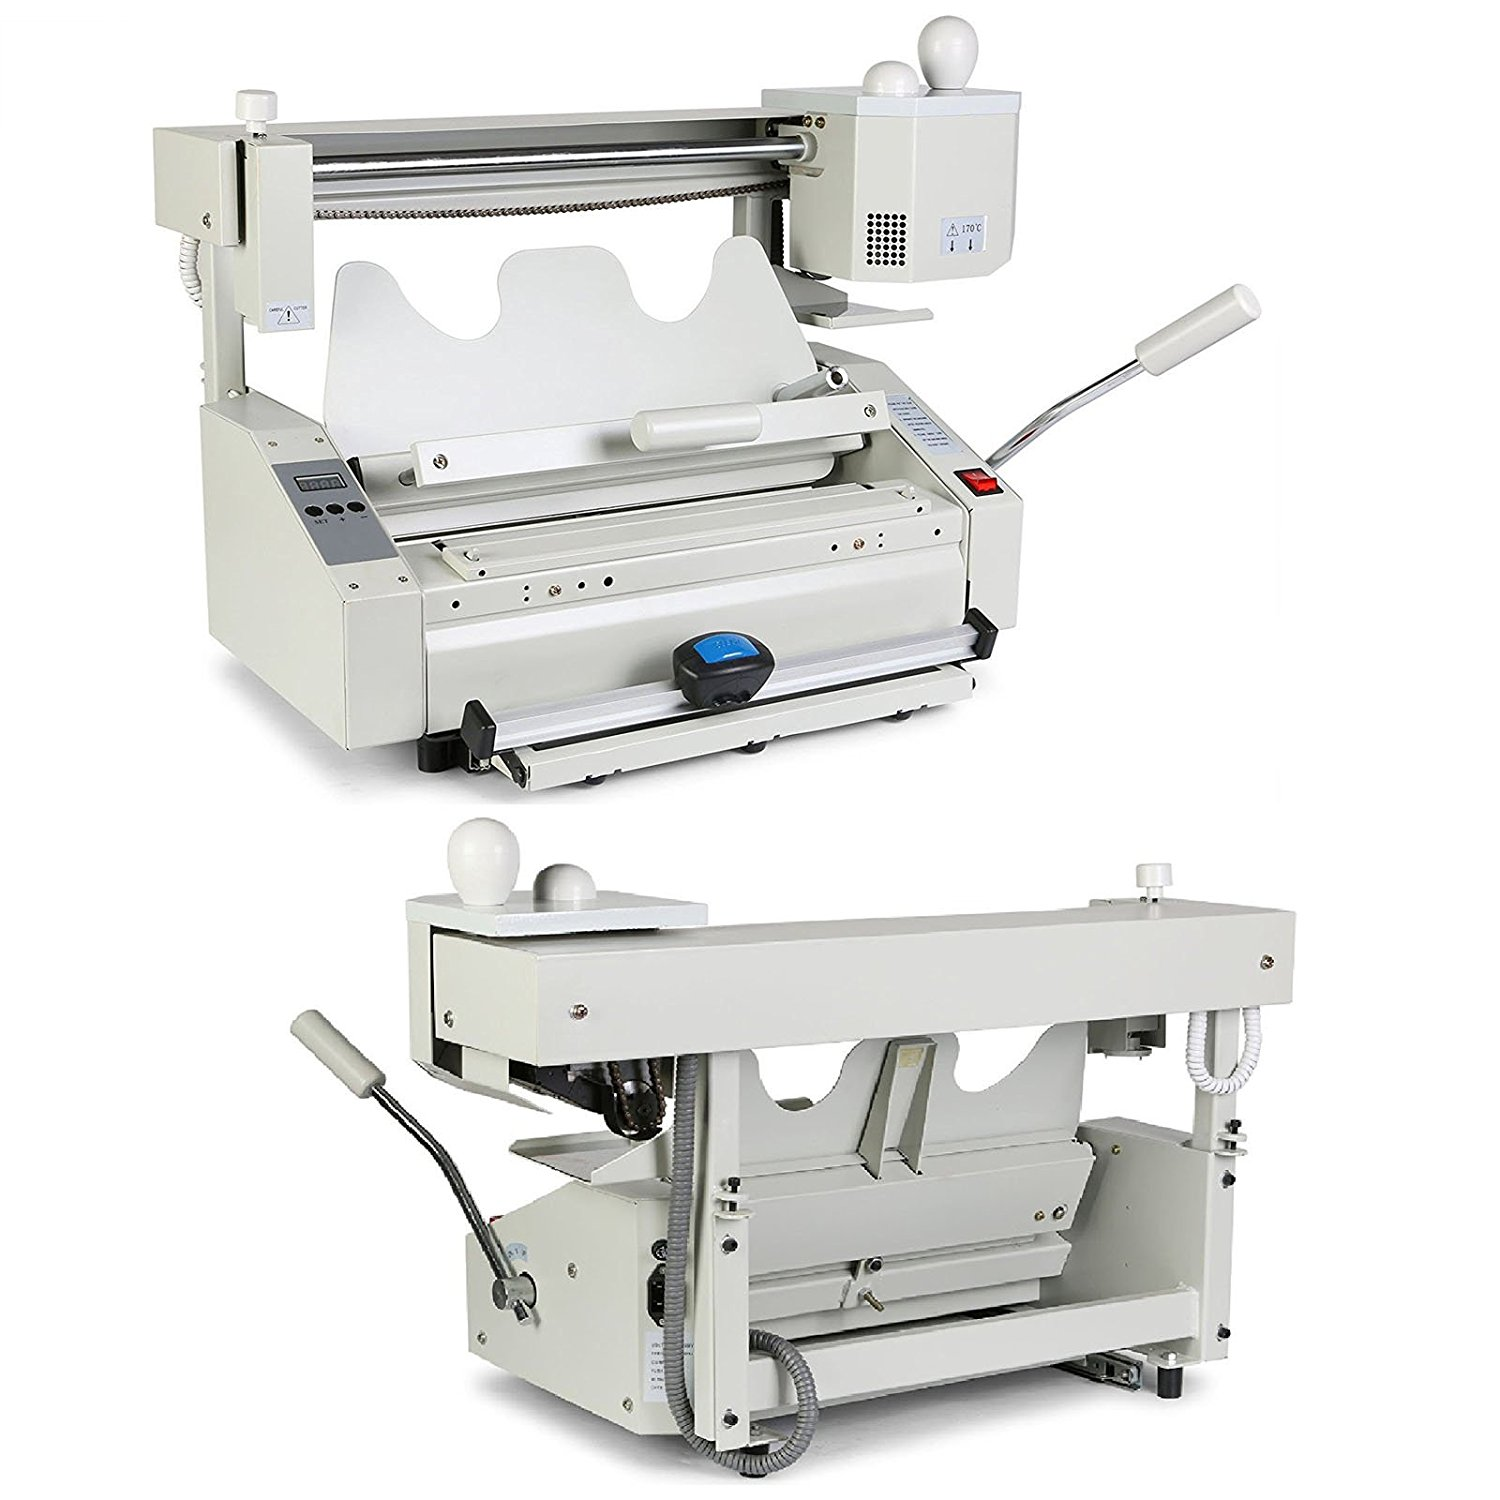 Superland Binding Machine 4 In 1 Desktop Manual Hot Melt Glue Book Binder Wireless Hot Glue Book Binding Machine for Binding Books Albums Notebook (Binding Machine)